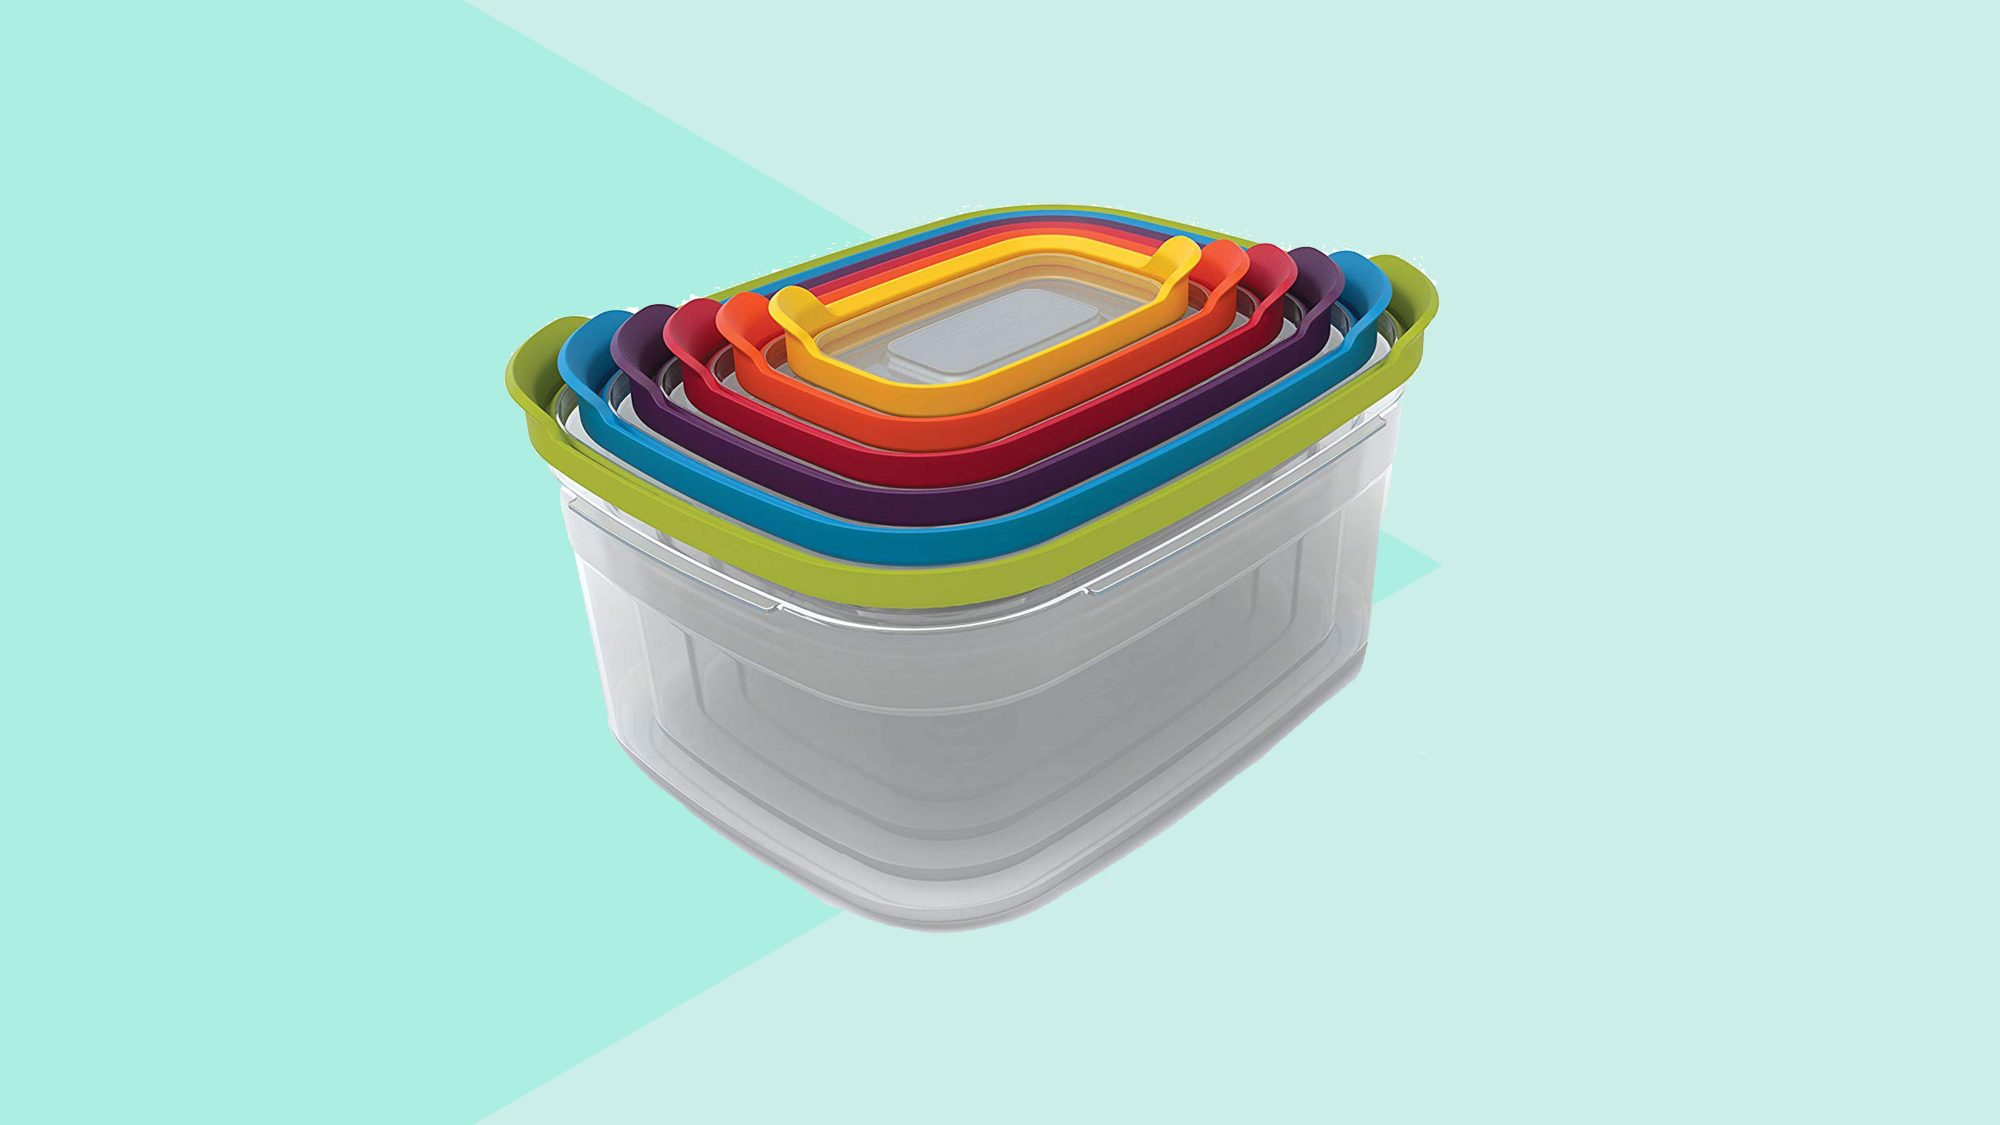 Amazon Shoppers Say These Snap-Together Nesting Food Containers Are